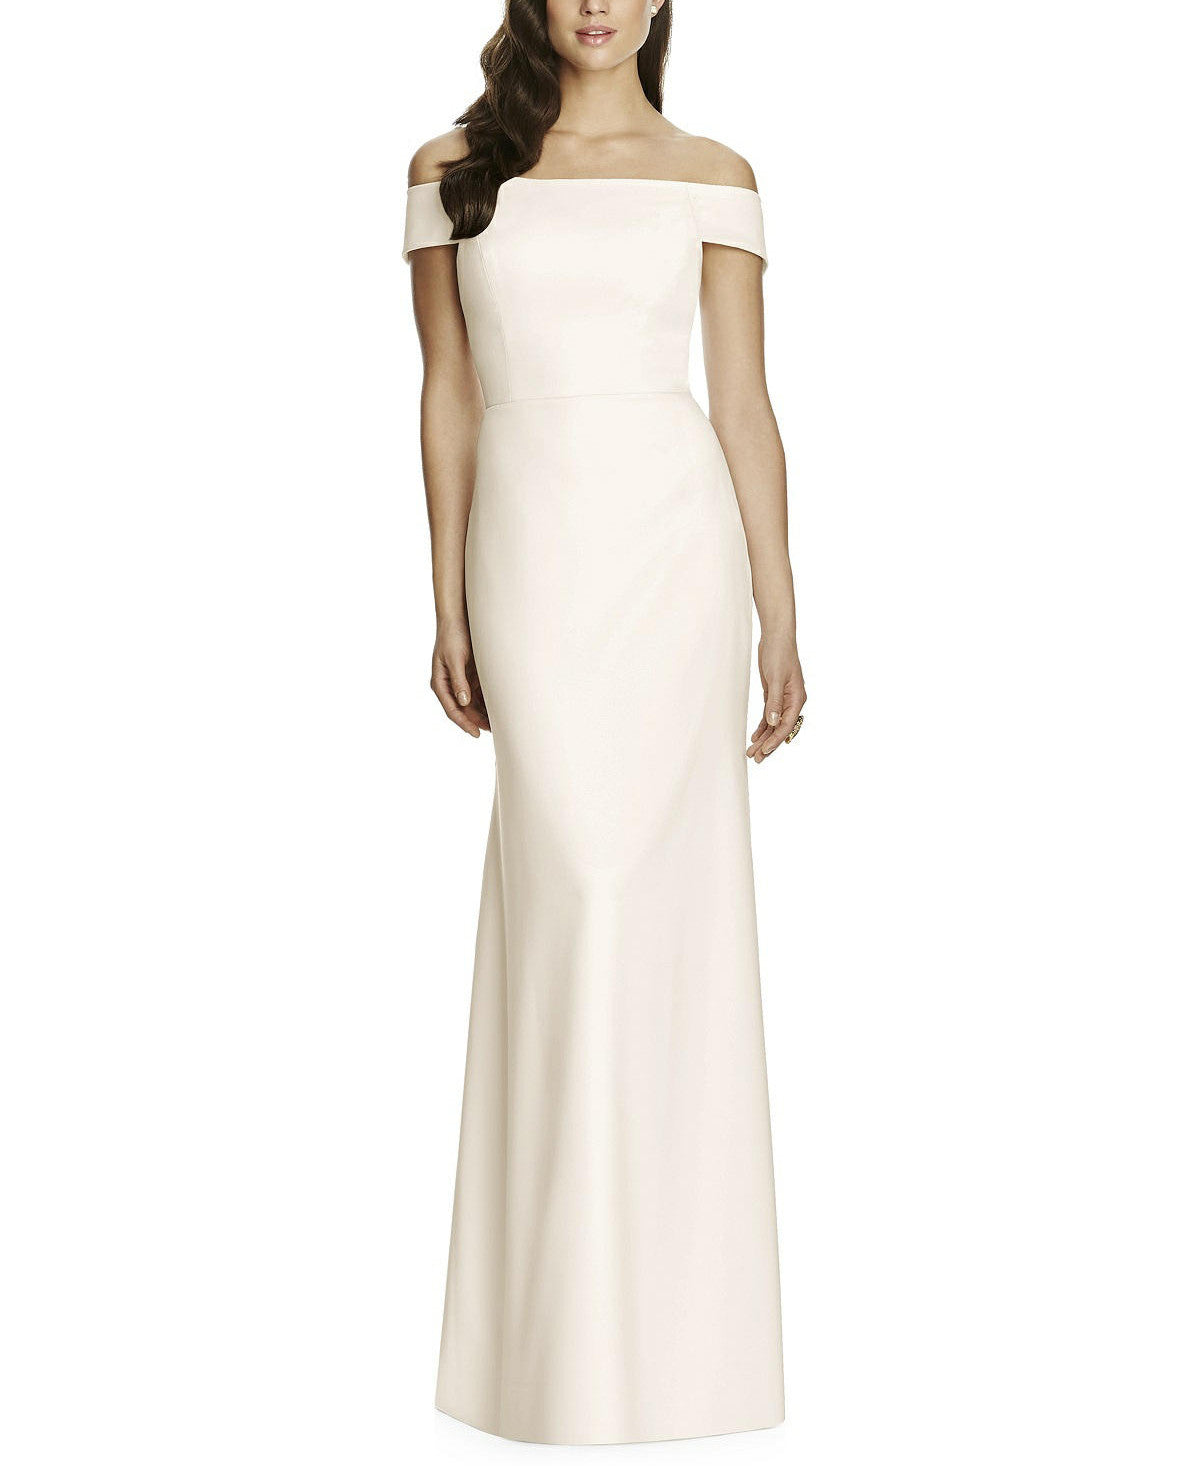 Dessy collection style 2987 bridesmaid dress brideside dessy collection style 2987 ombrellifo Gallery